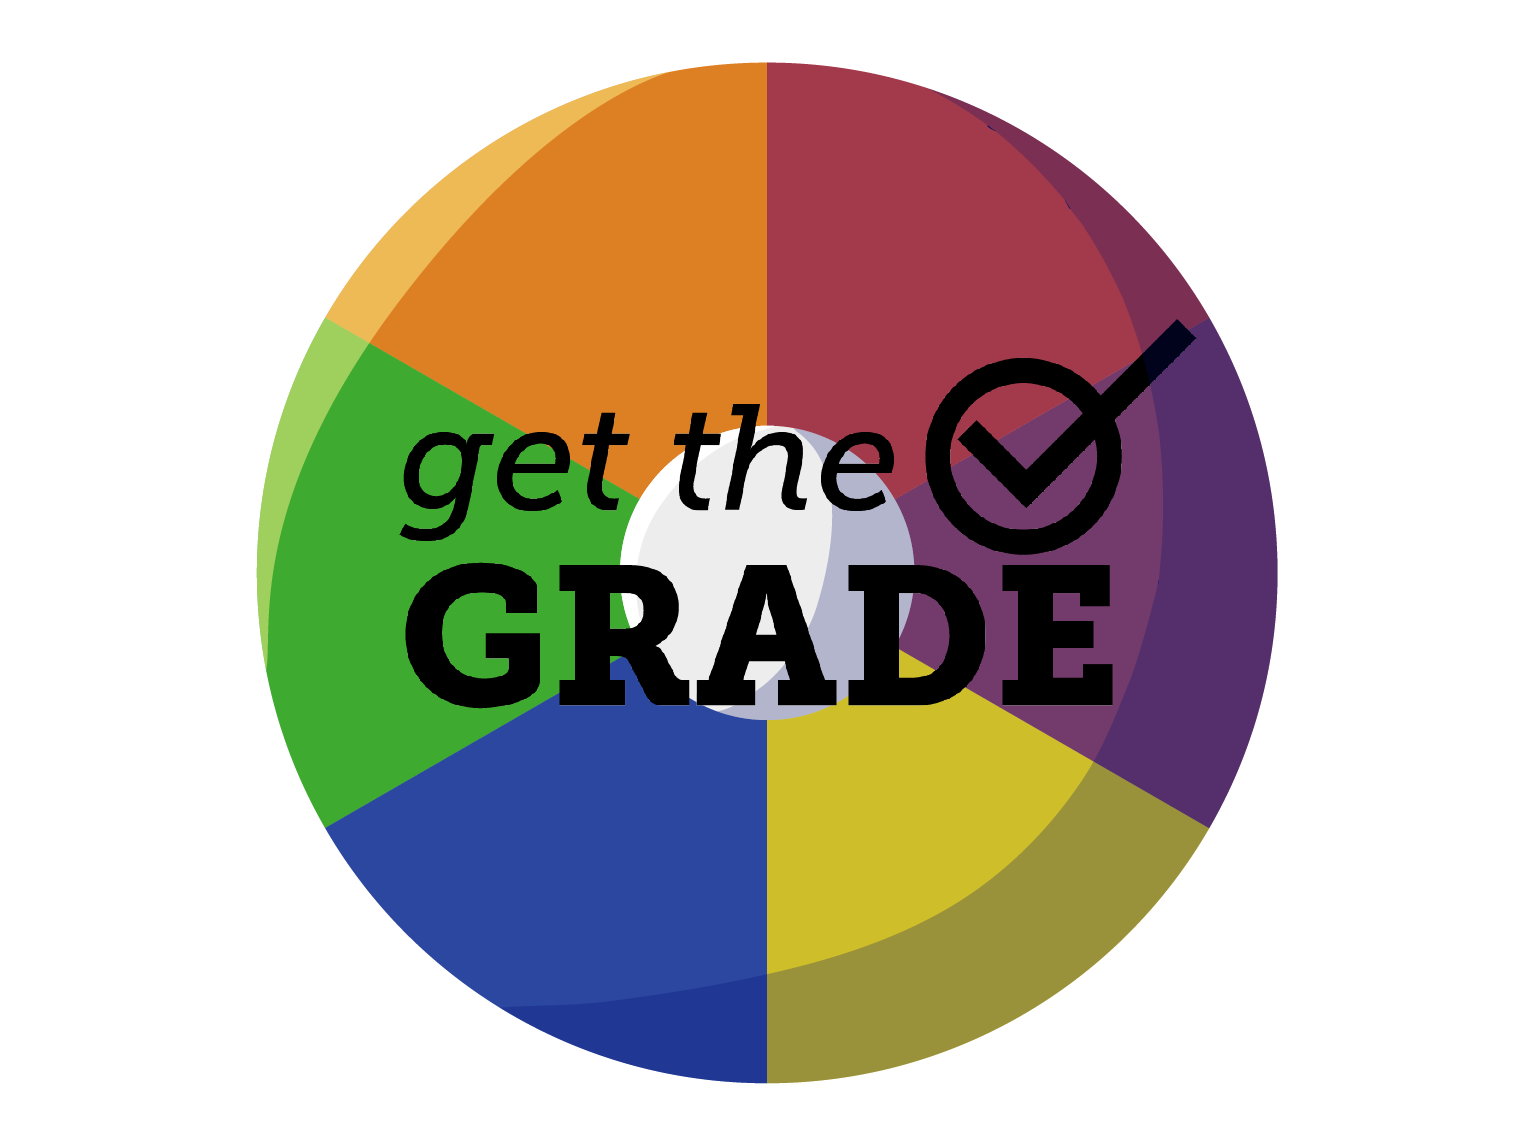 Thumbnail image for 'Get the Grade' project